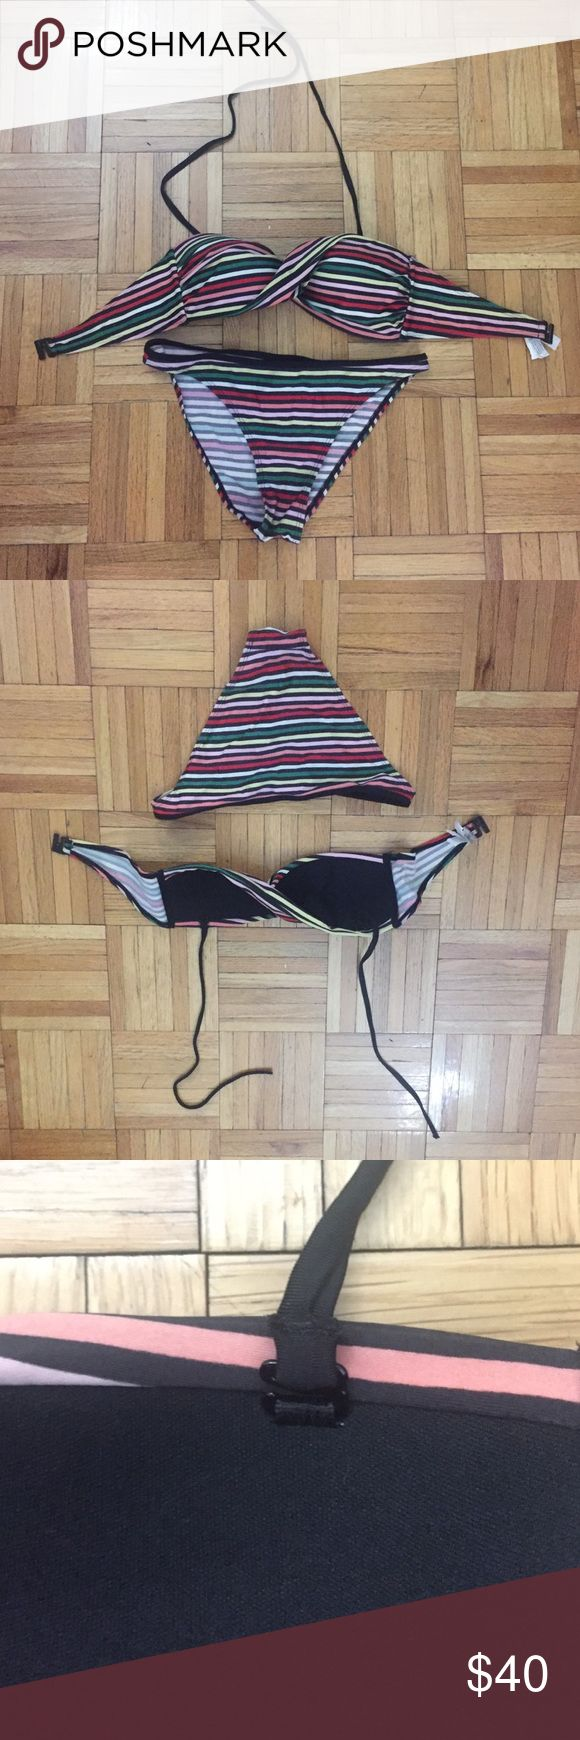 "Etam (Spain) Bandeau Bikini Set Gently used; good condition; removable halter strap; top for 32-34B; bottom for 32-34""hips; Spanish swimwear designer Etam Swim Bikinis"